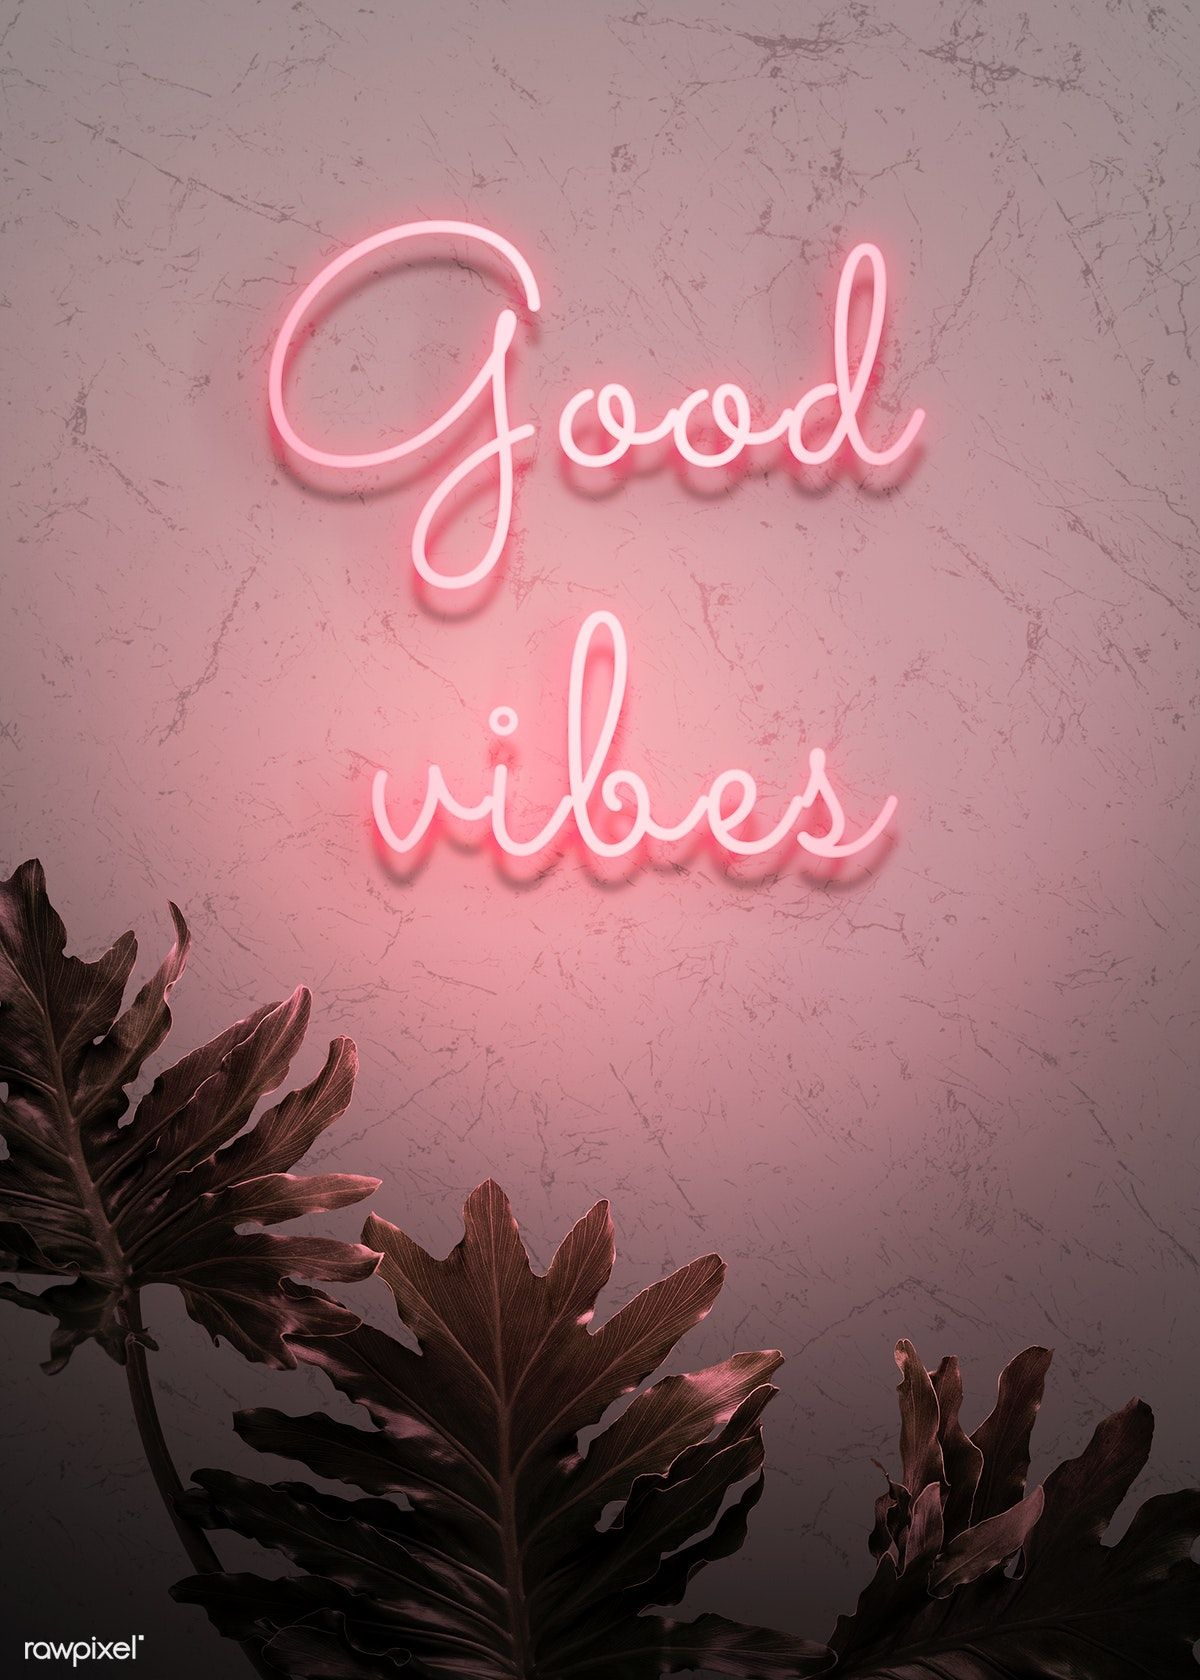 Download Premium Psd Of Neon Red Good Vibes On A Wall 894340 Neon Wallpaper Pastel Pink Aesthetic Aesthetic Iphone Wallpaper